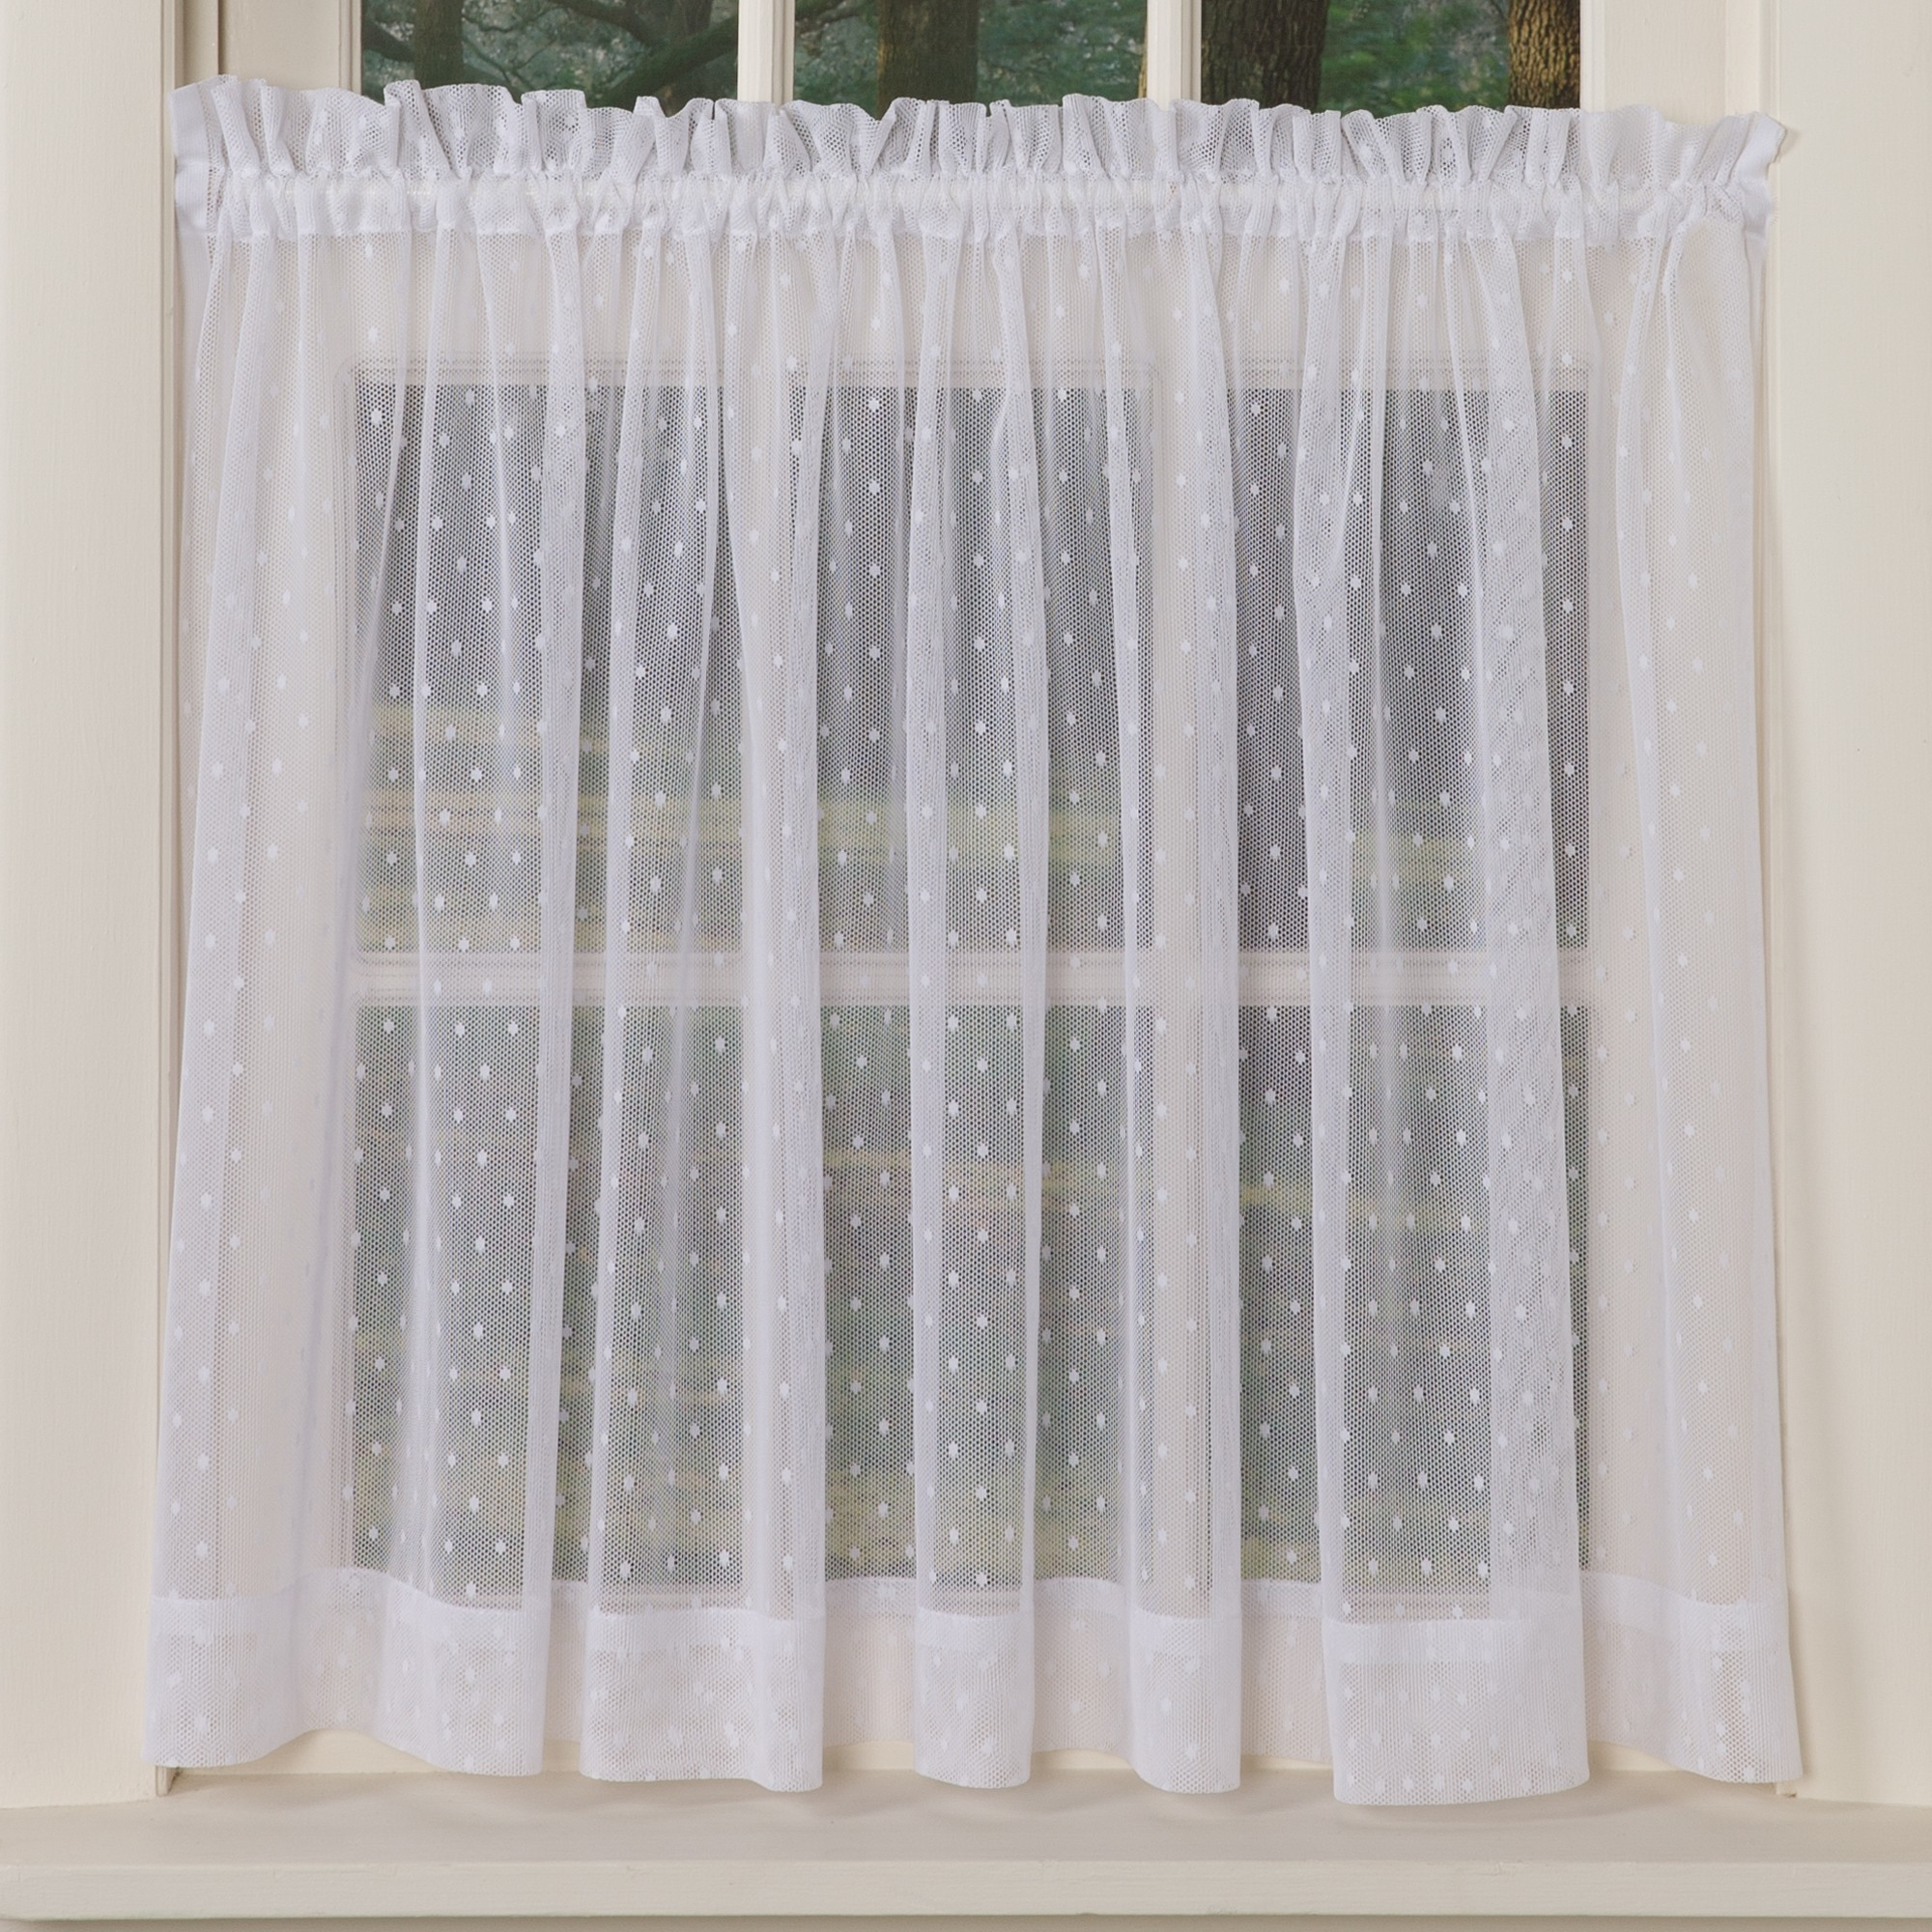 Dotted Sheer Curtains Sturbridge Yankee Workshop Pertaining To Curtains Sheers (Image 9 of 25)